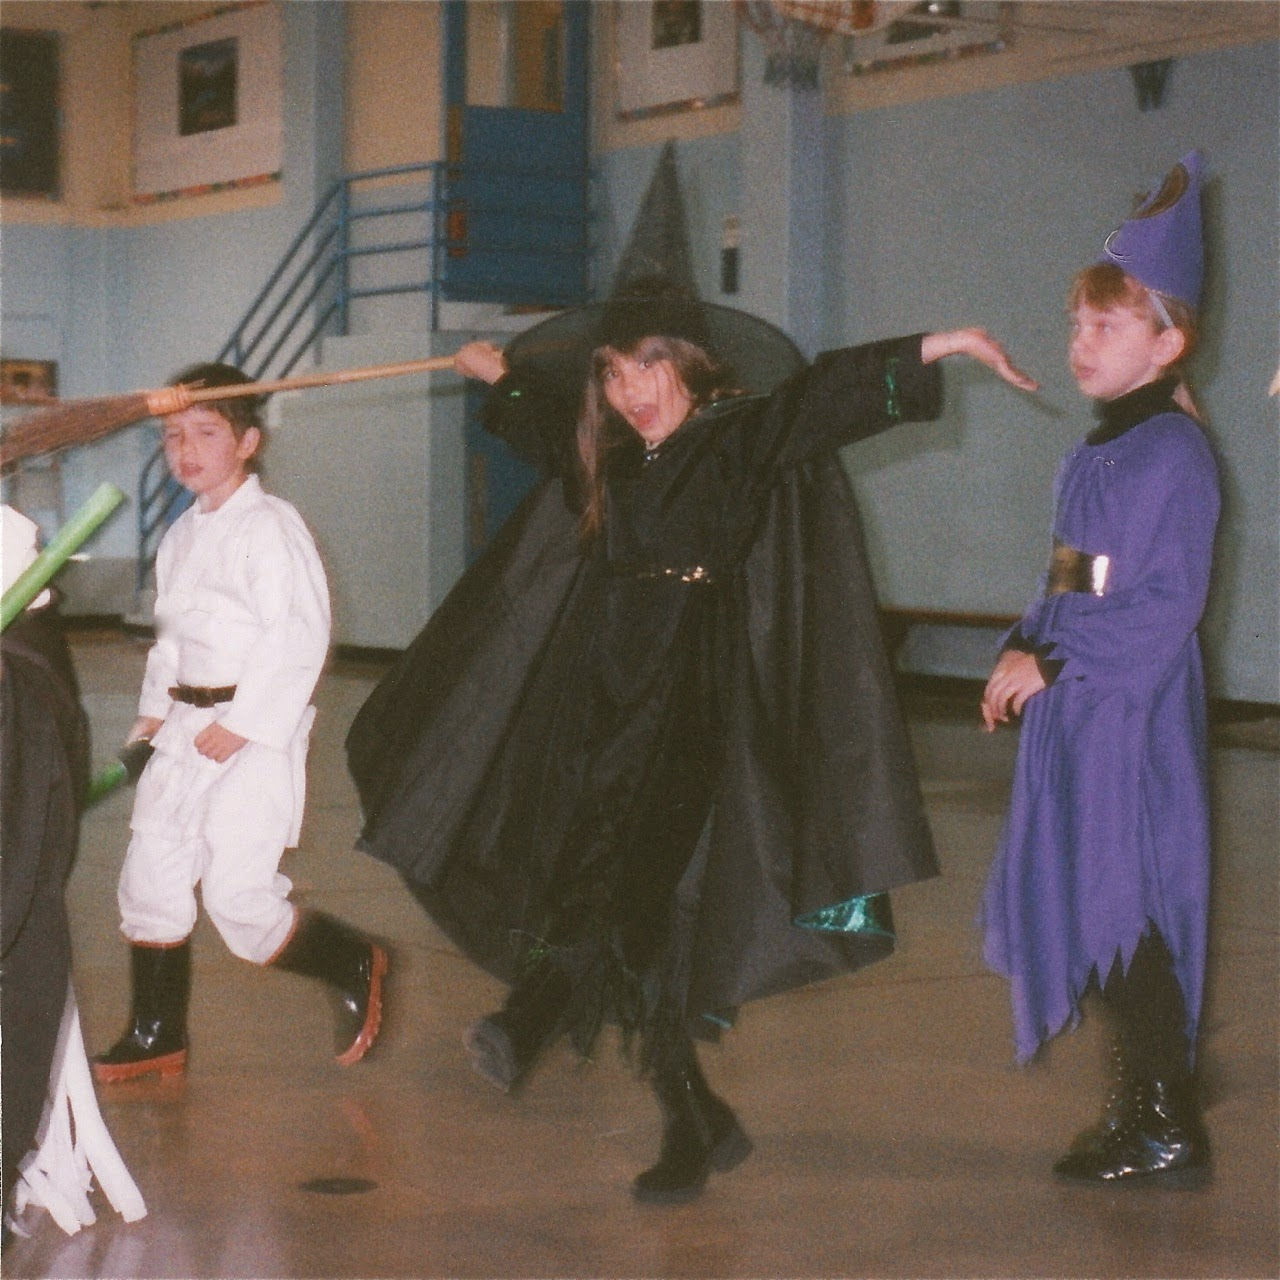 Gym, Gymnasium, witch, jedi, students, 3rd grade, third, dancing witch, Oregon